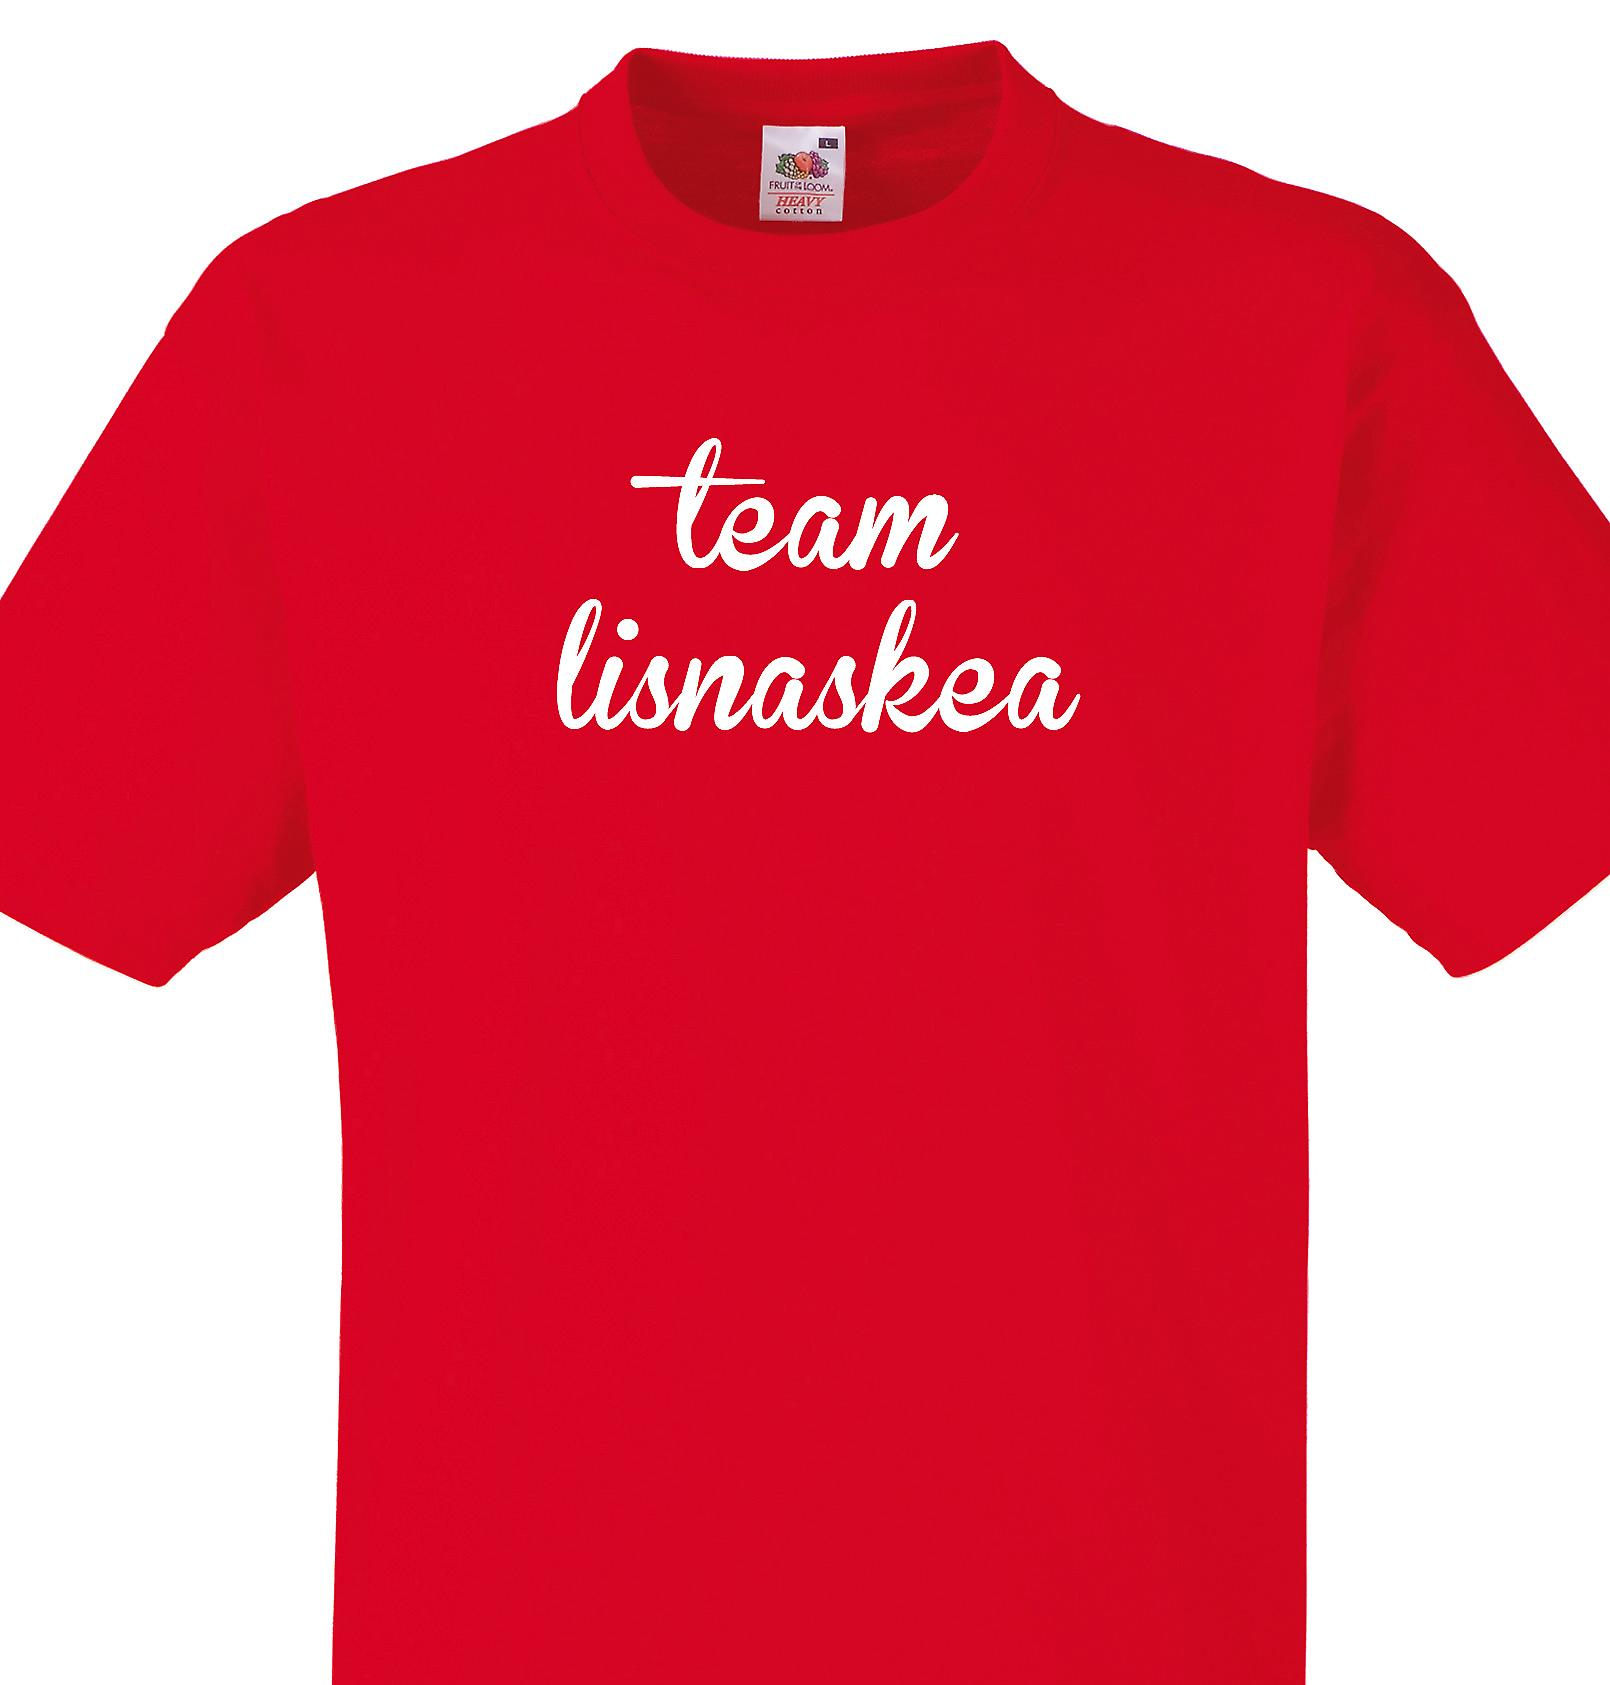 Team Lisnaskea Red T shirt